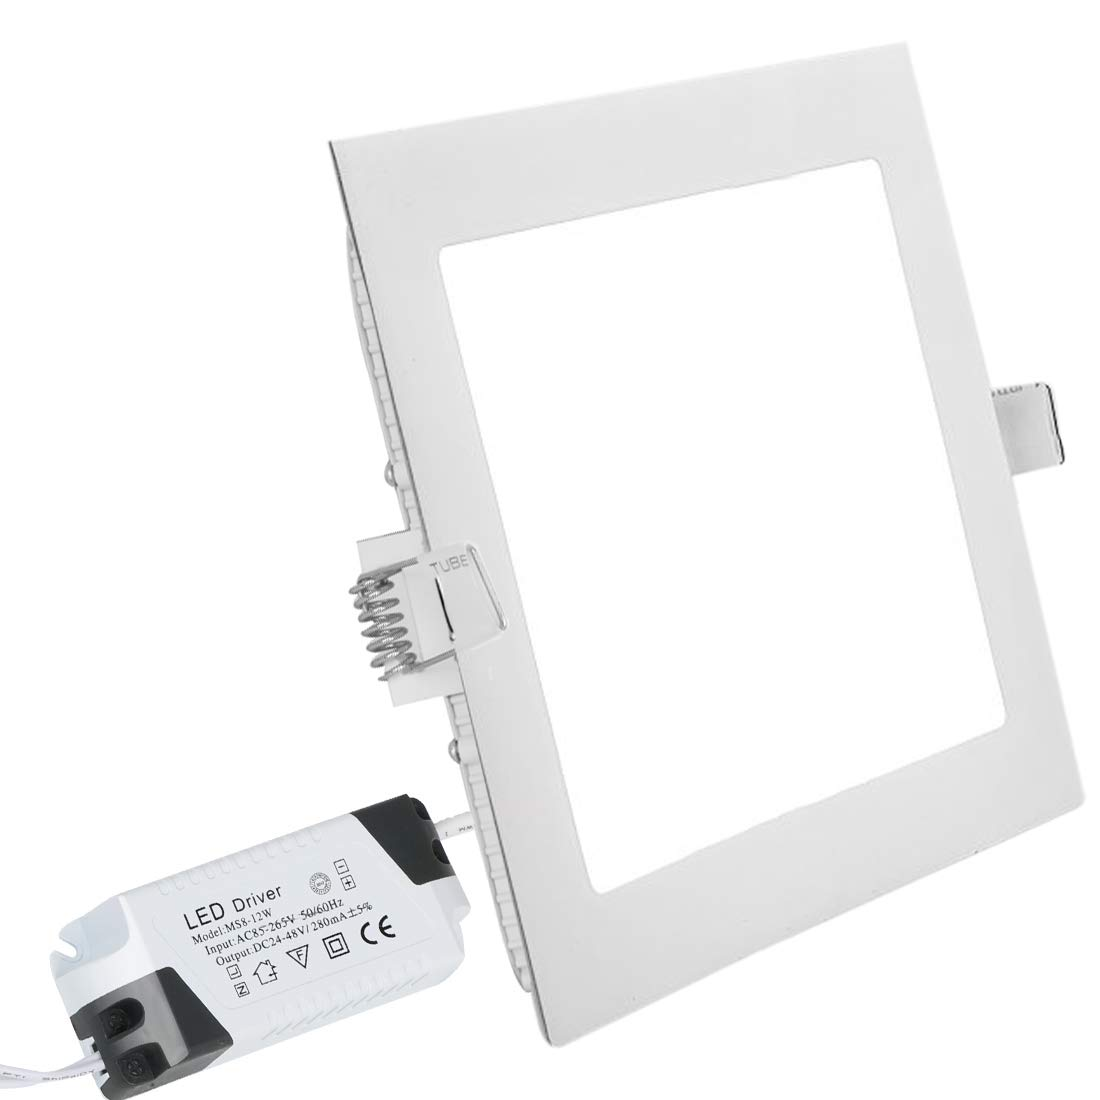 LED Panel Light Led Recessed Lights Recessed Ceiling Panel Square Ultra Slim Flat Panel Down Light for Home Living Room Bathroom Dining Room Corridor Conference Room Office Gazebo 9W 3000K XYD